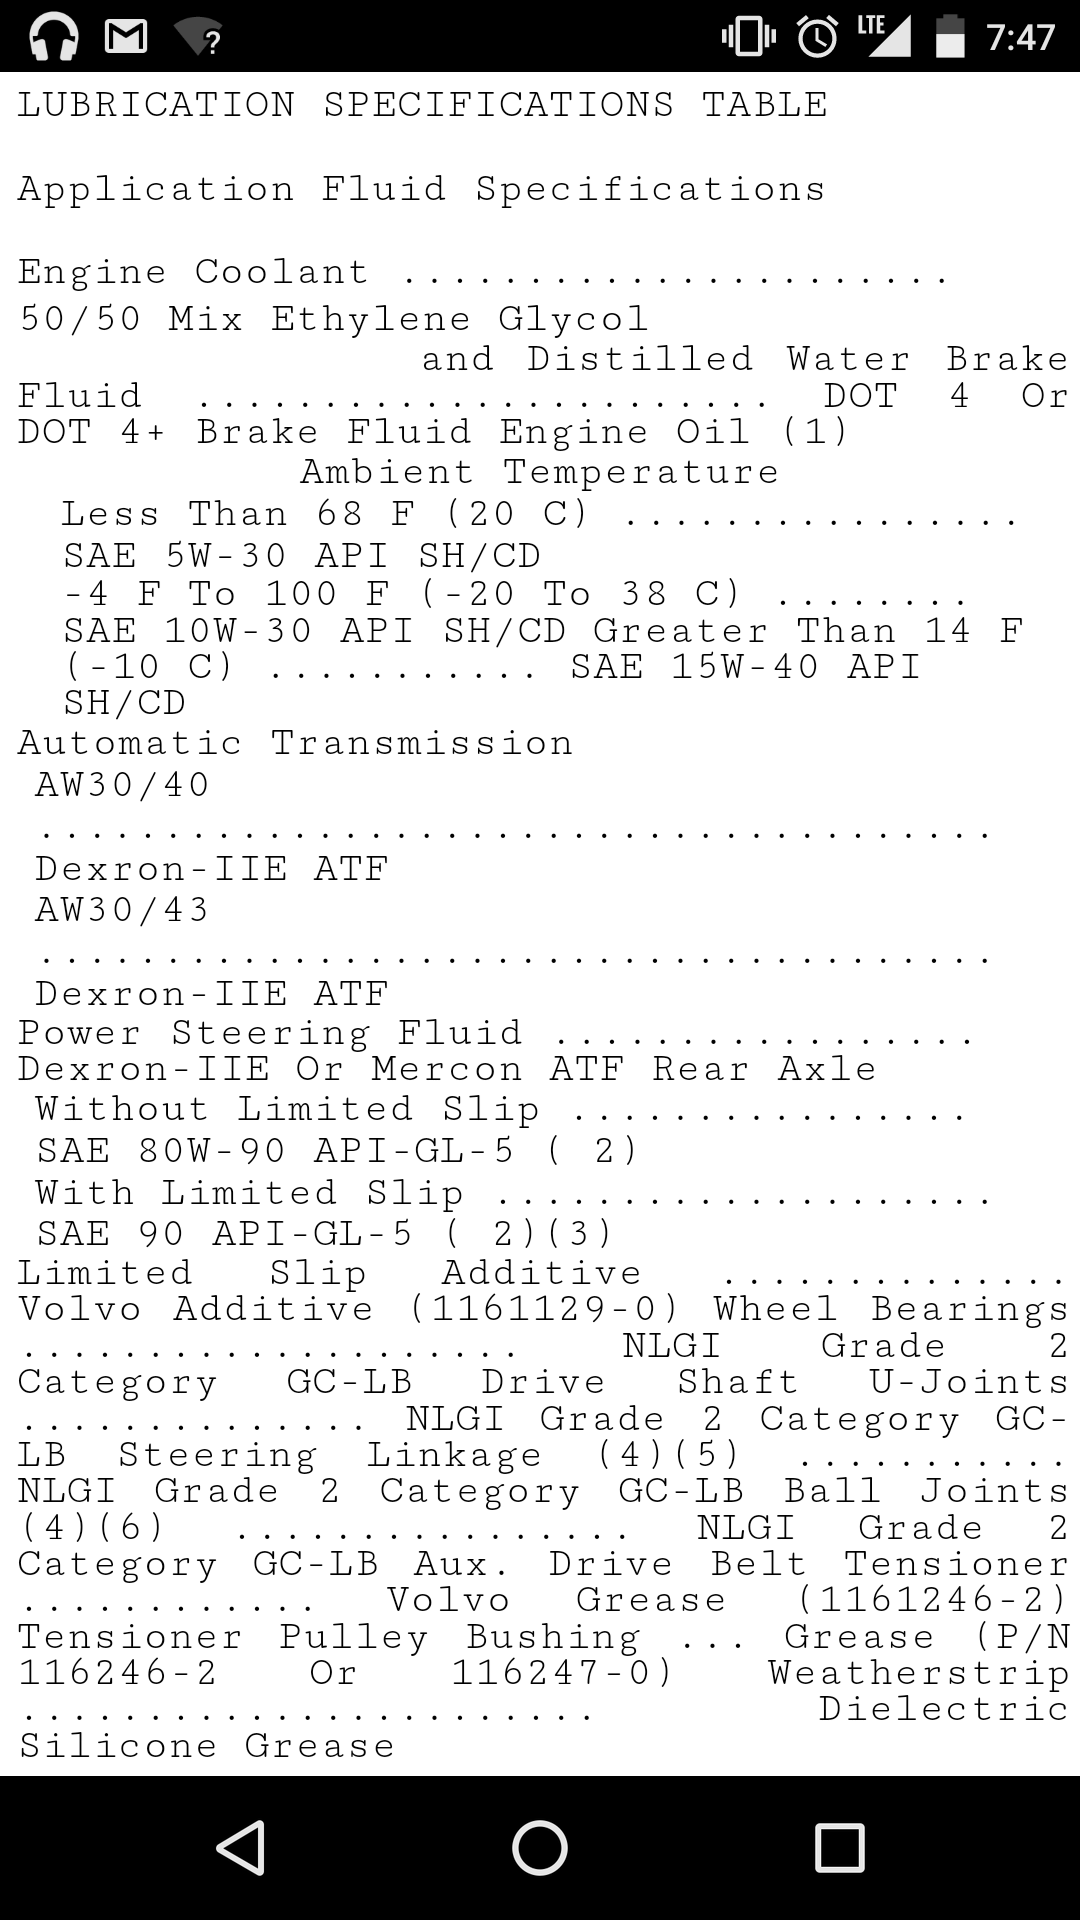 1992 960, serious transmission issue - RWD - Volvospeed Forums